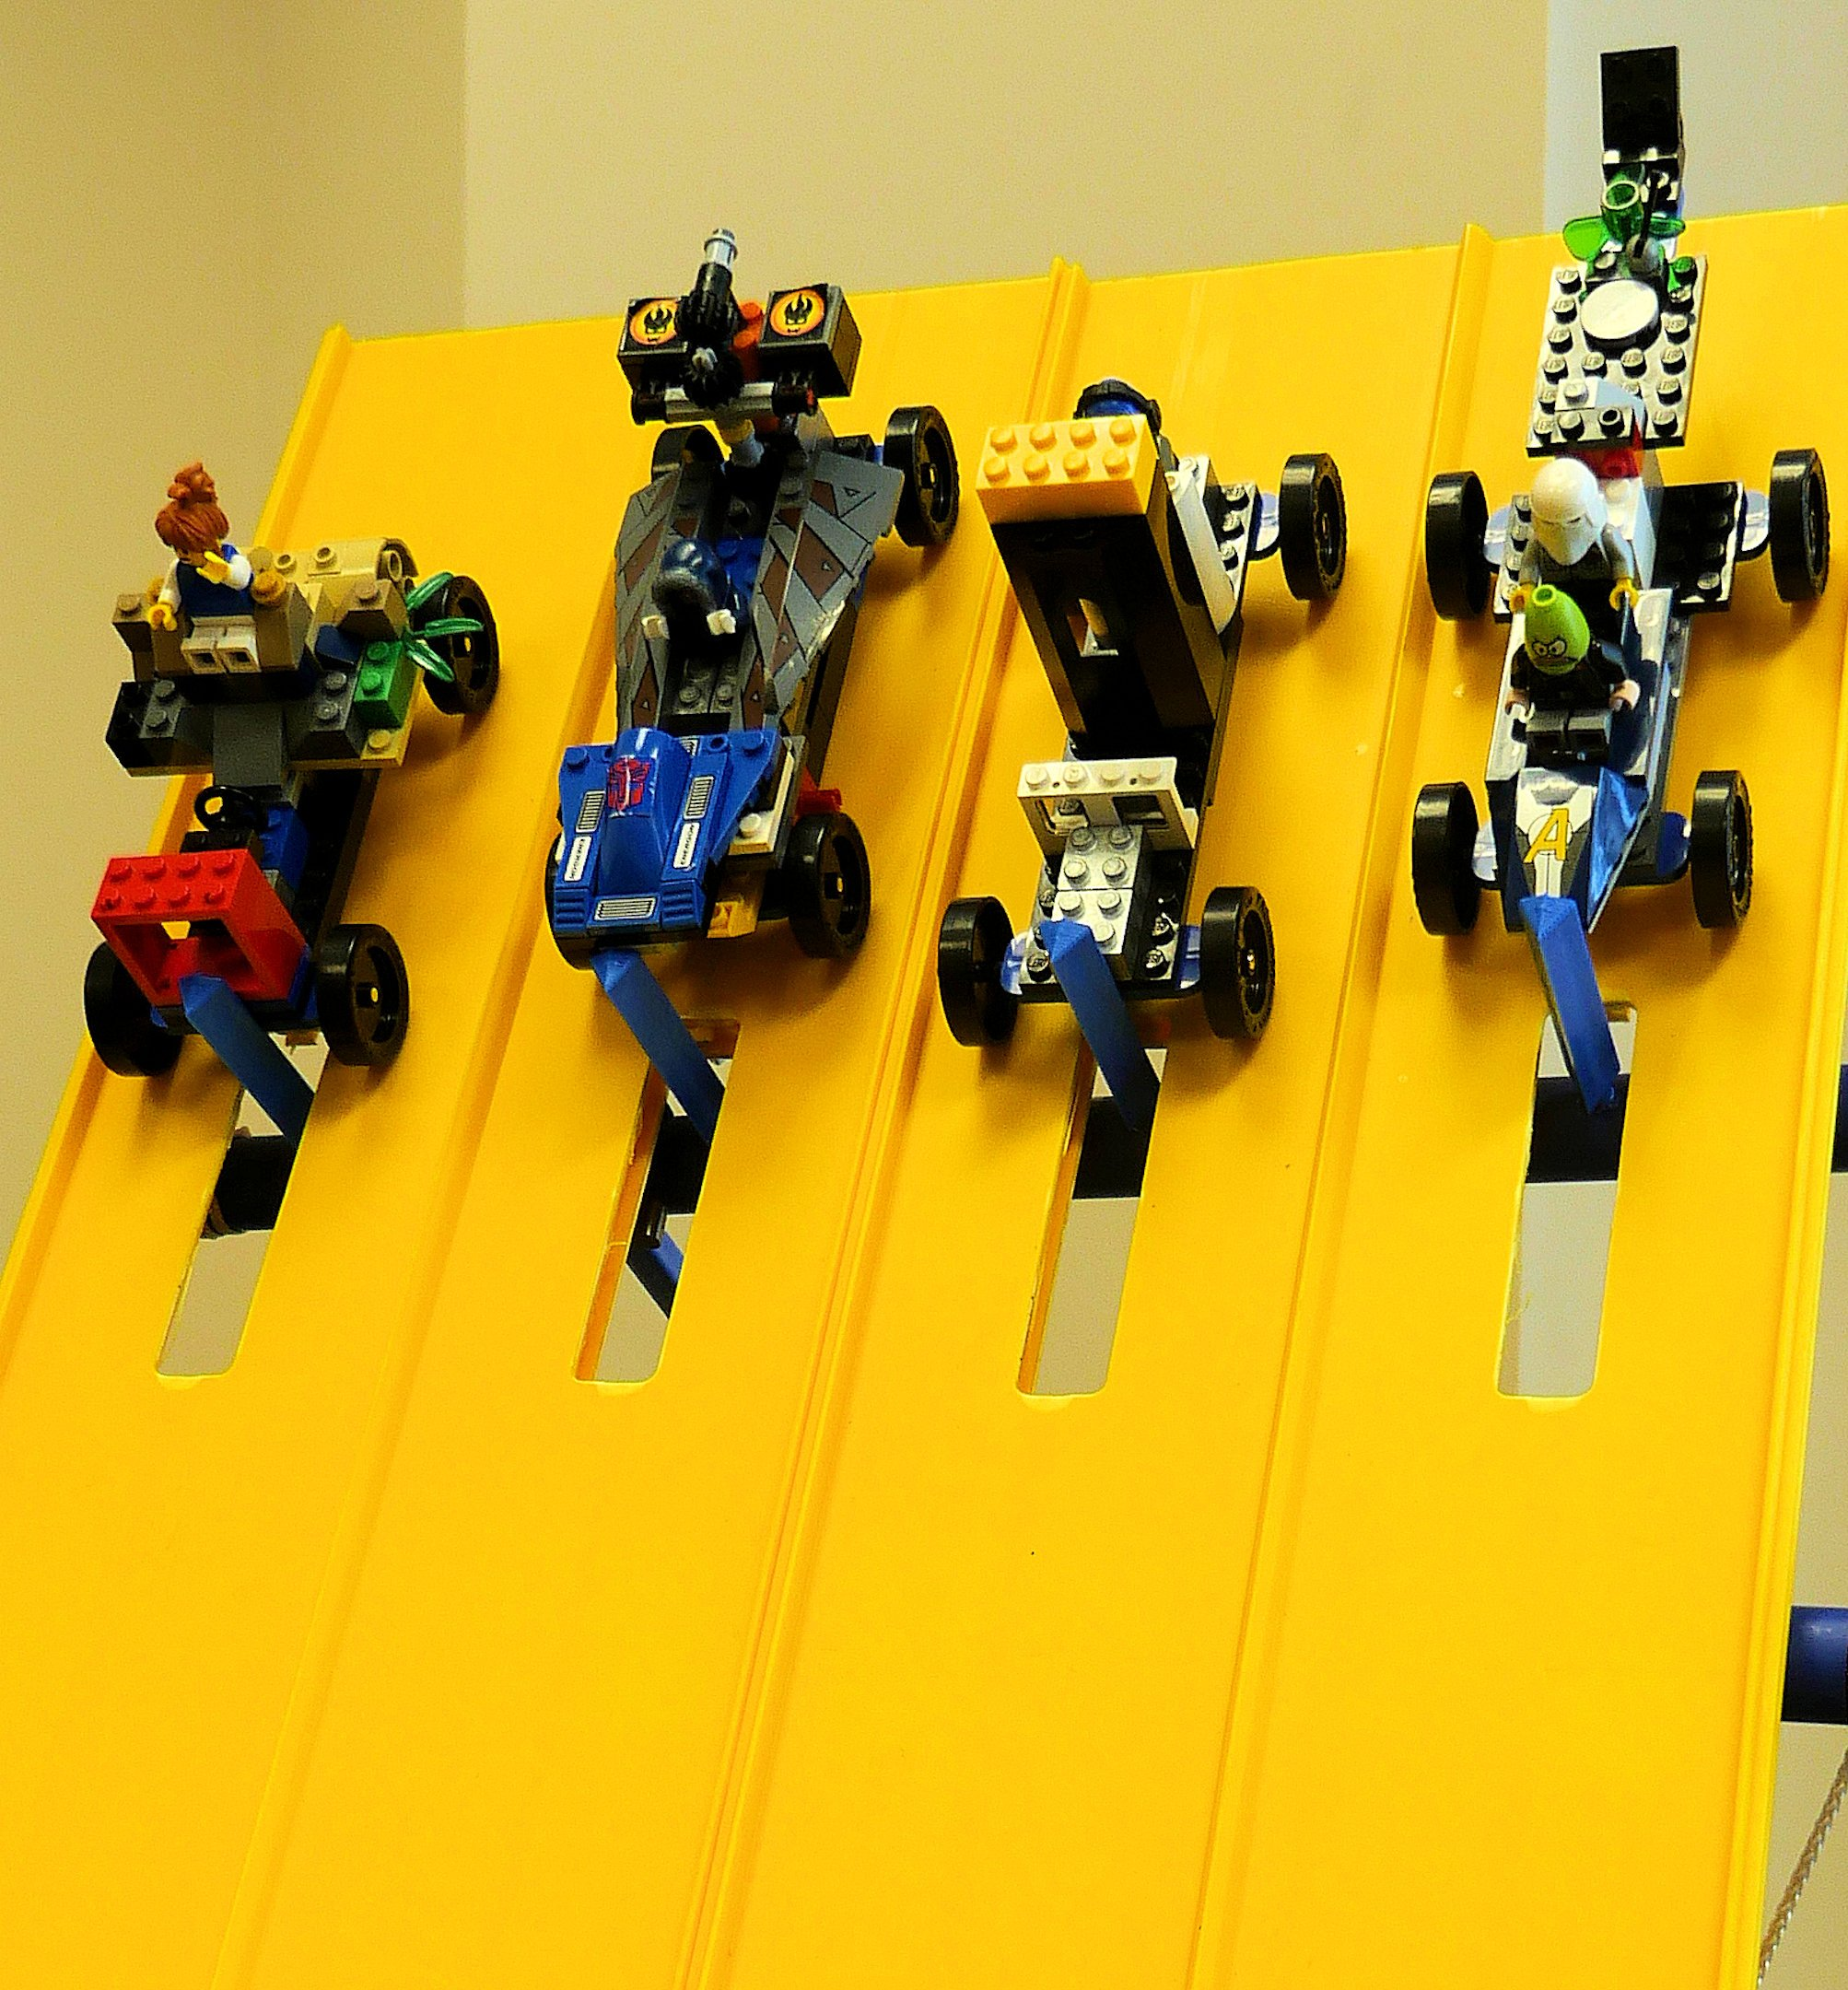 LEGO Derby Racing Starting Gate